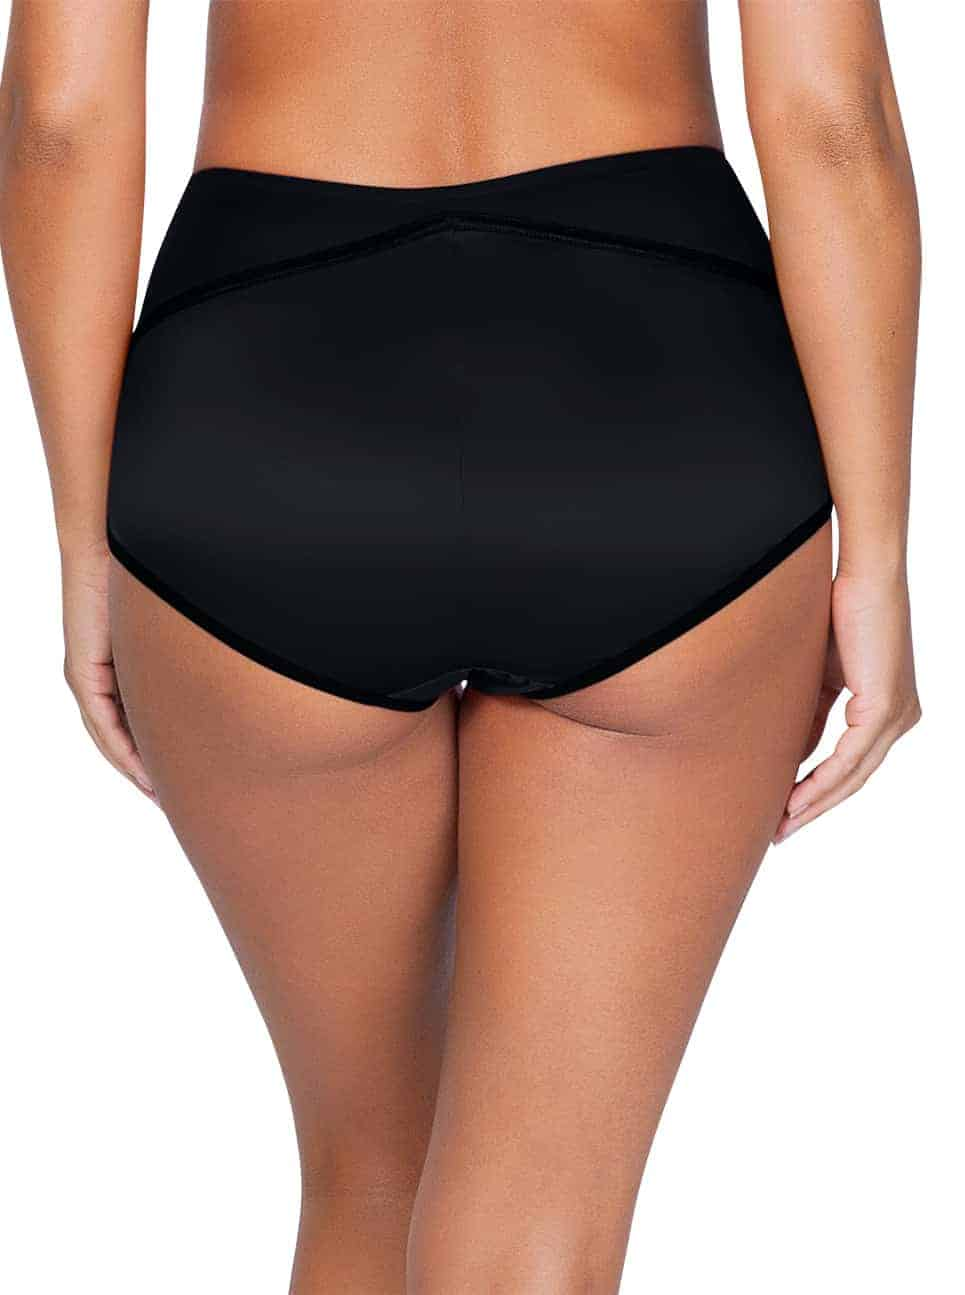 Charlotte 6917 HighWaistedBriefBlack Back - Charlotte Highwaist Brief - Black - 6917